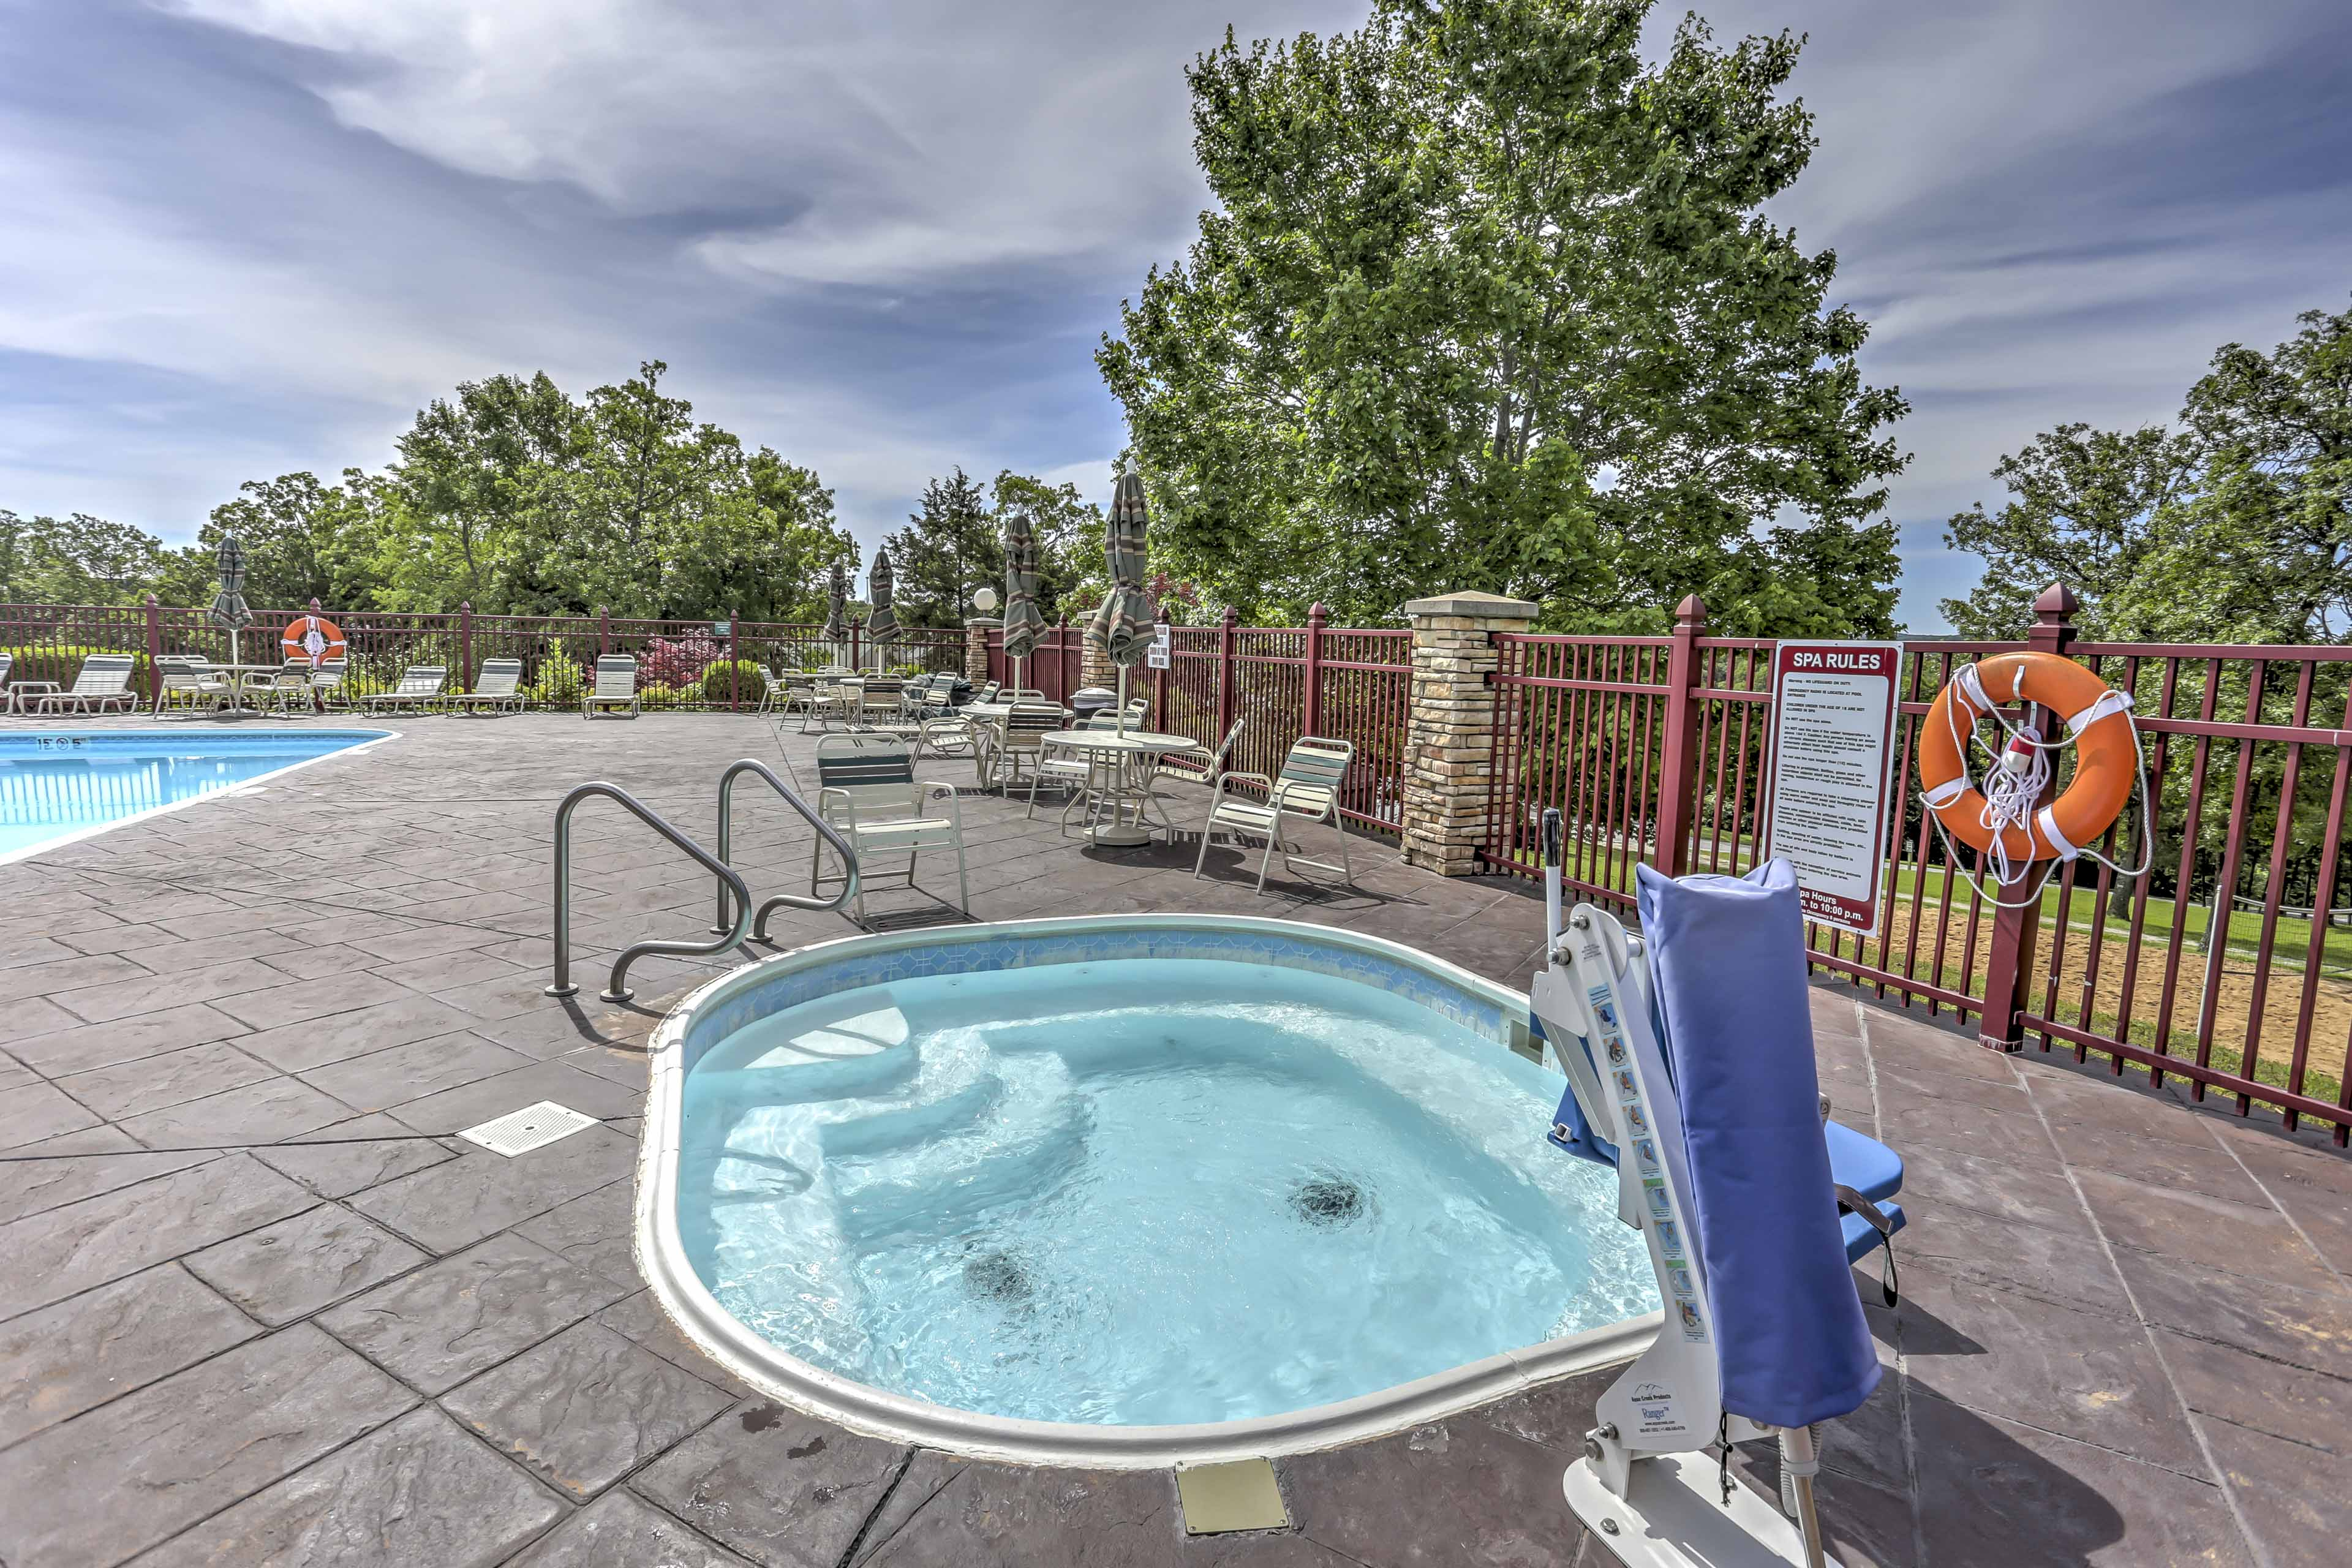 Soak in the on-site hot tub.